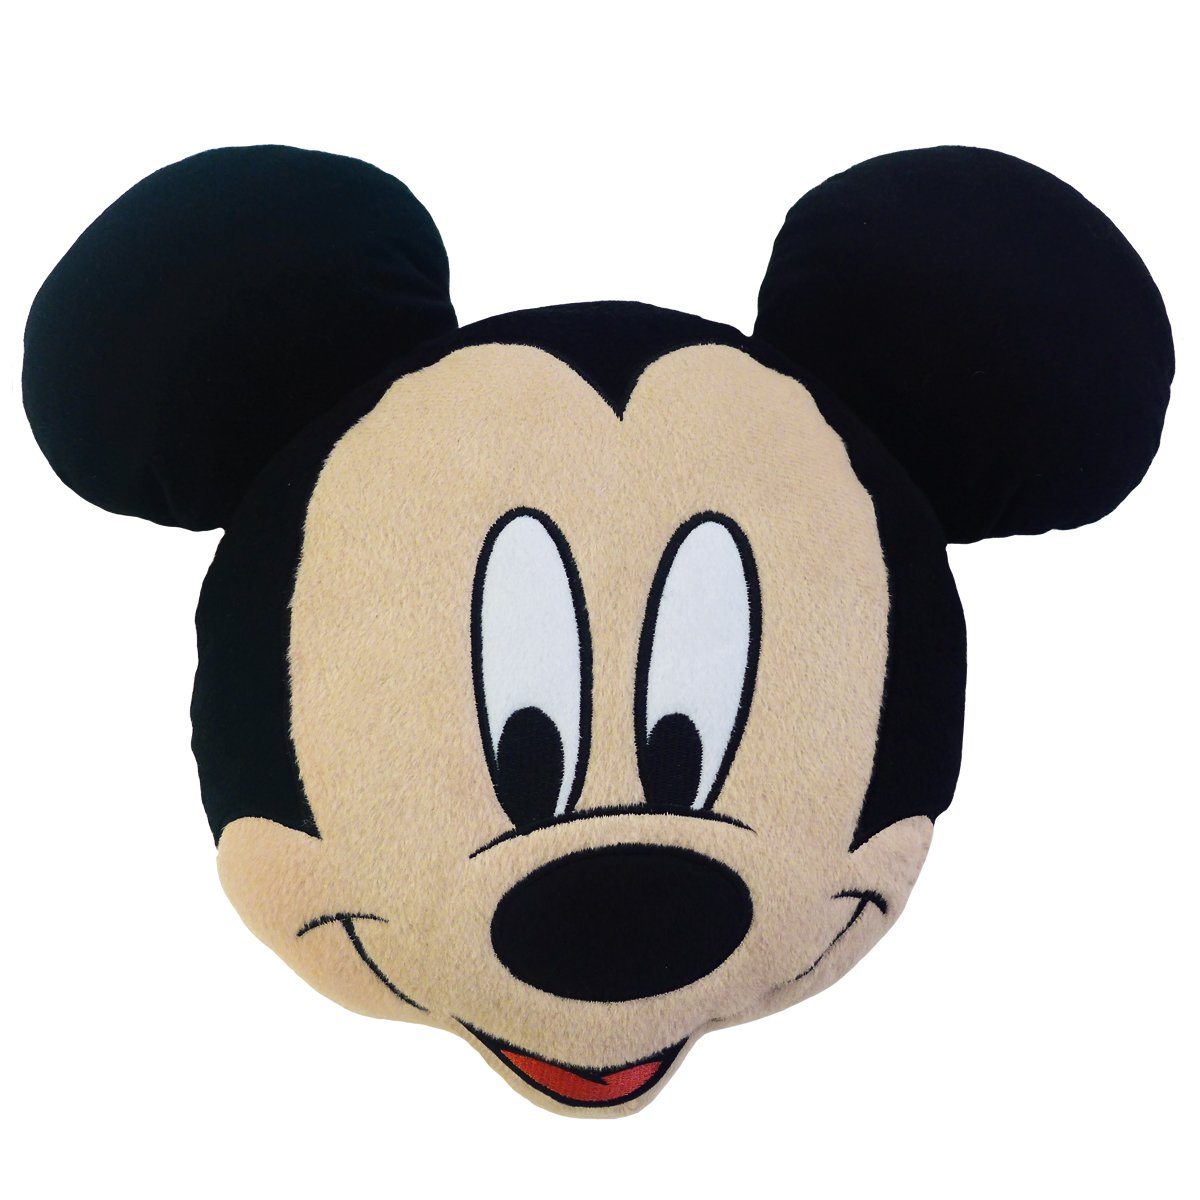 Disney smiling Mickey Mouse 042838 3D cushion made of polyester, 40 x 46 cm Disney Mickey